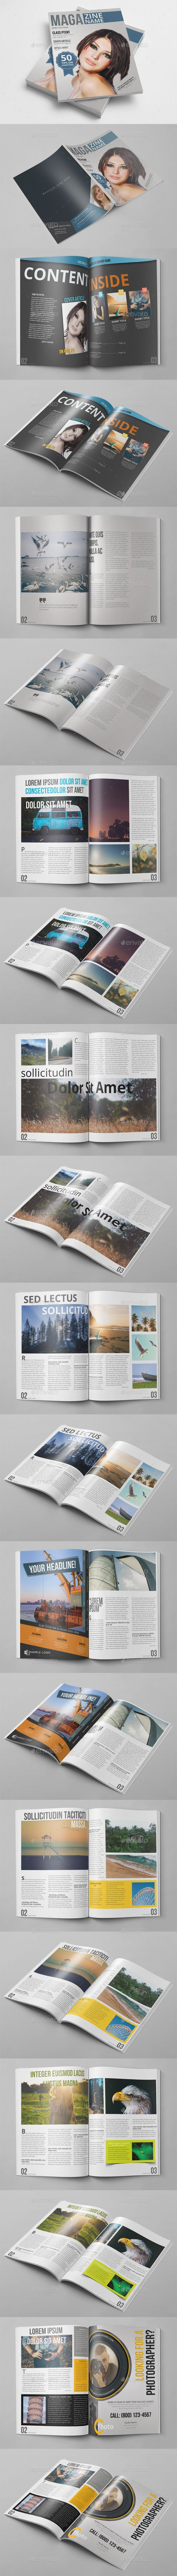 20 Pages Photoshop Magazine Template #design #journal Download: http://graphicriver.net/item/20-pages-photoshop-magazine/10767223?ref=ksioks